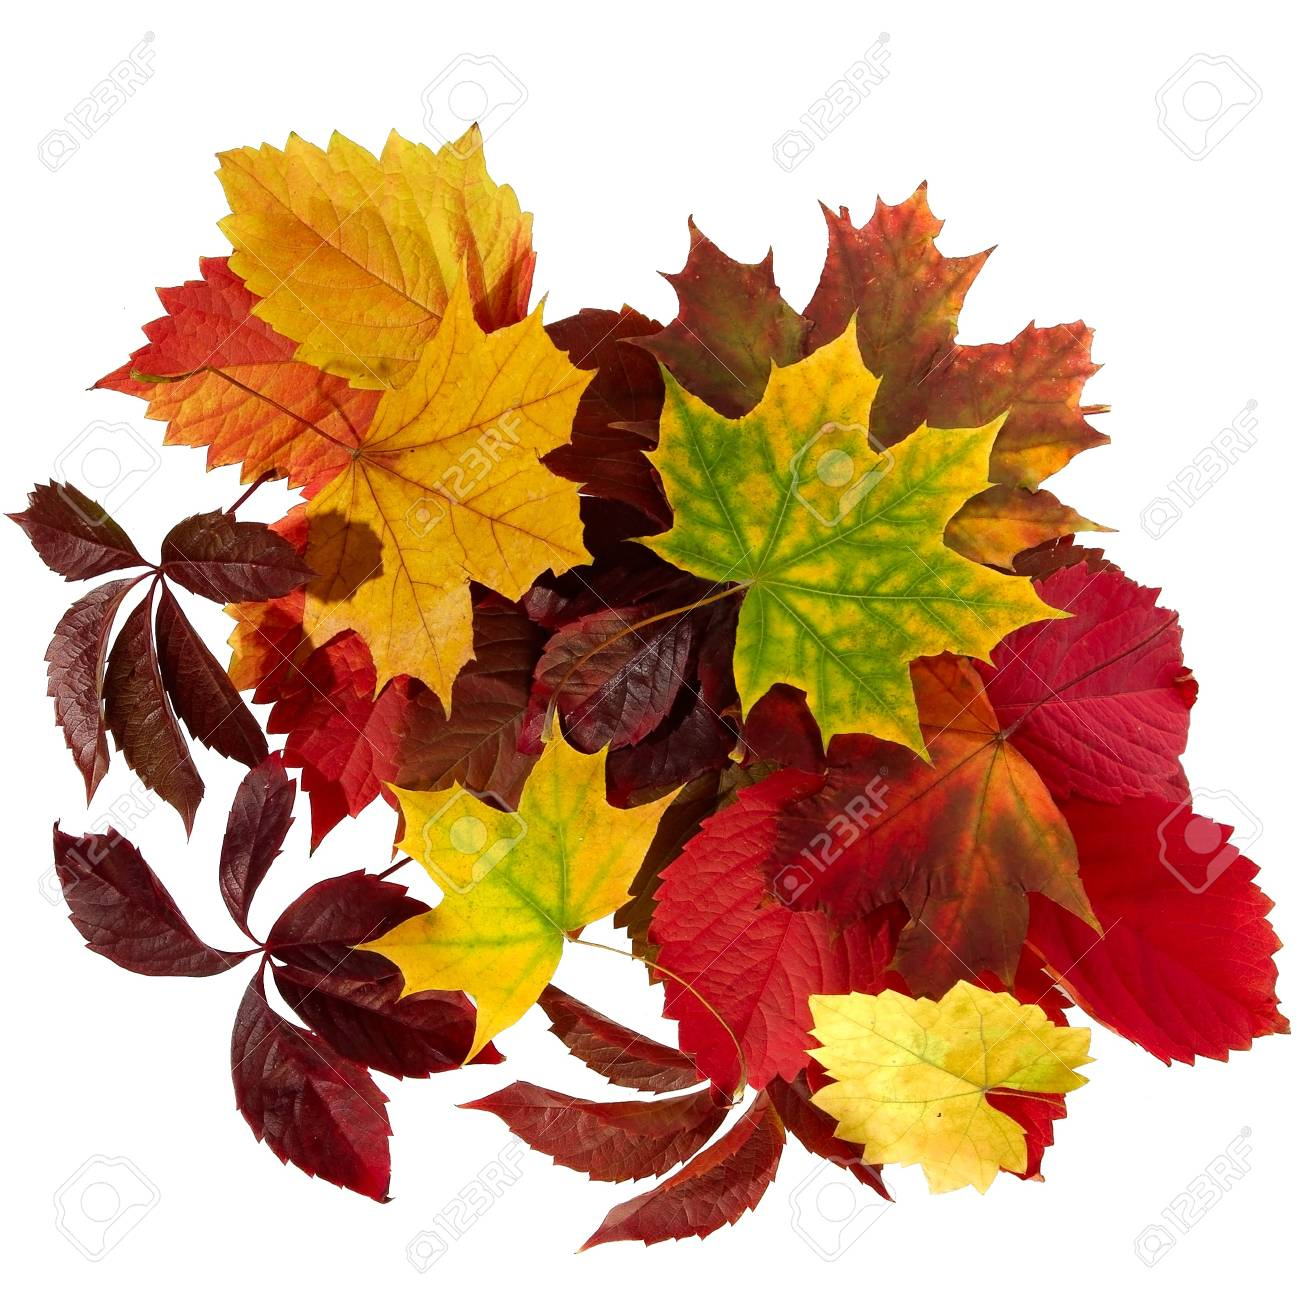 Isolated image collage from leaves Stock Photo - 20582790